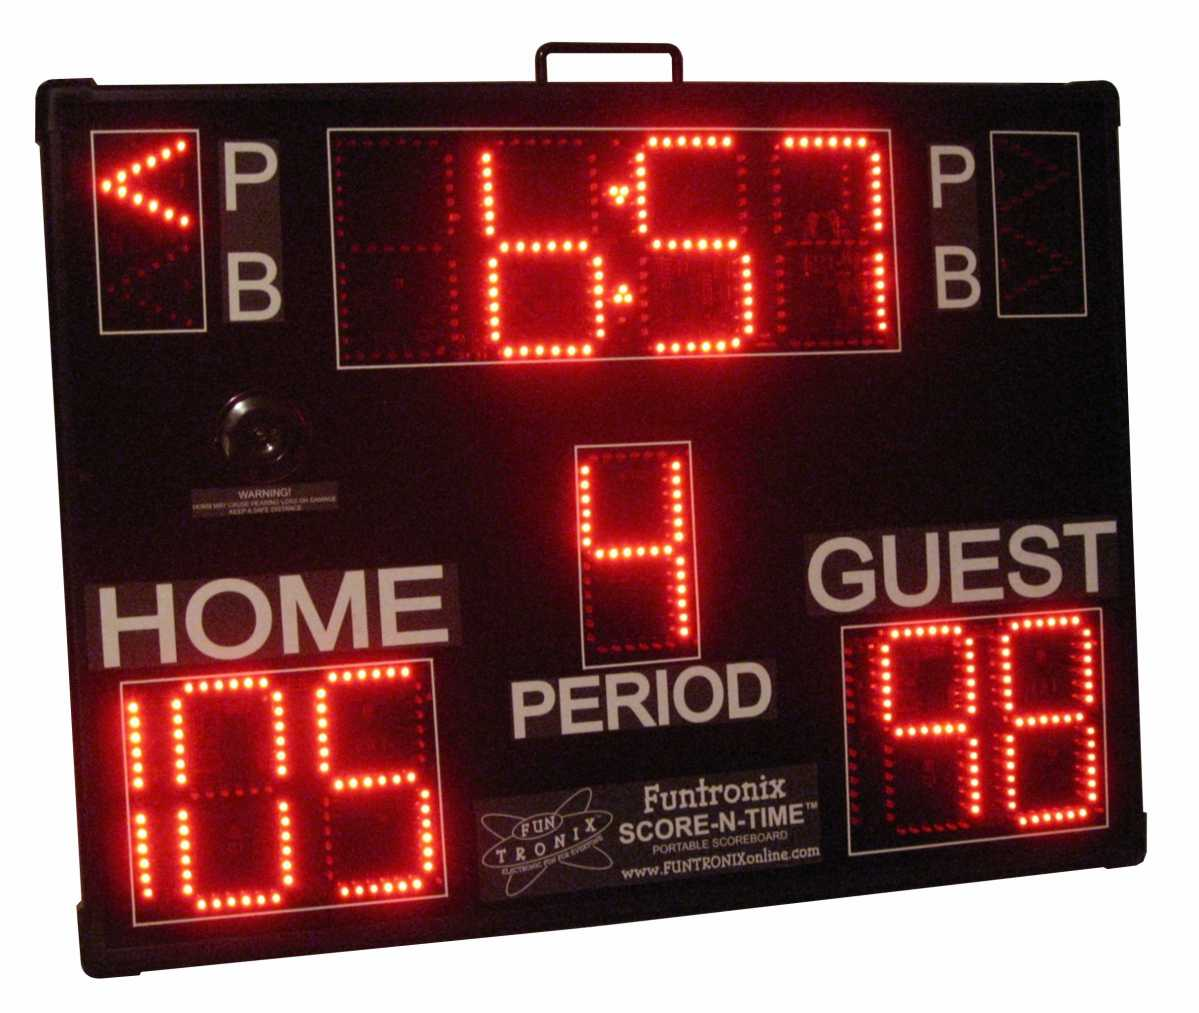 Large Portable Multisport Scoreboard